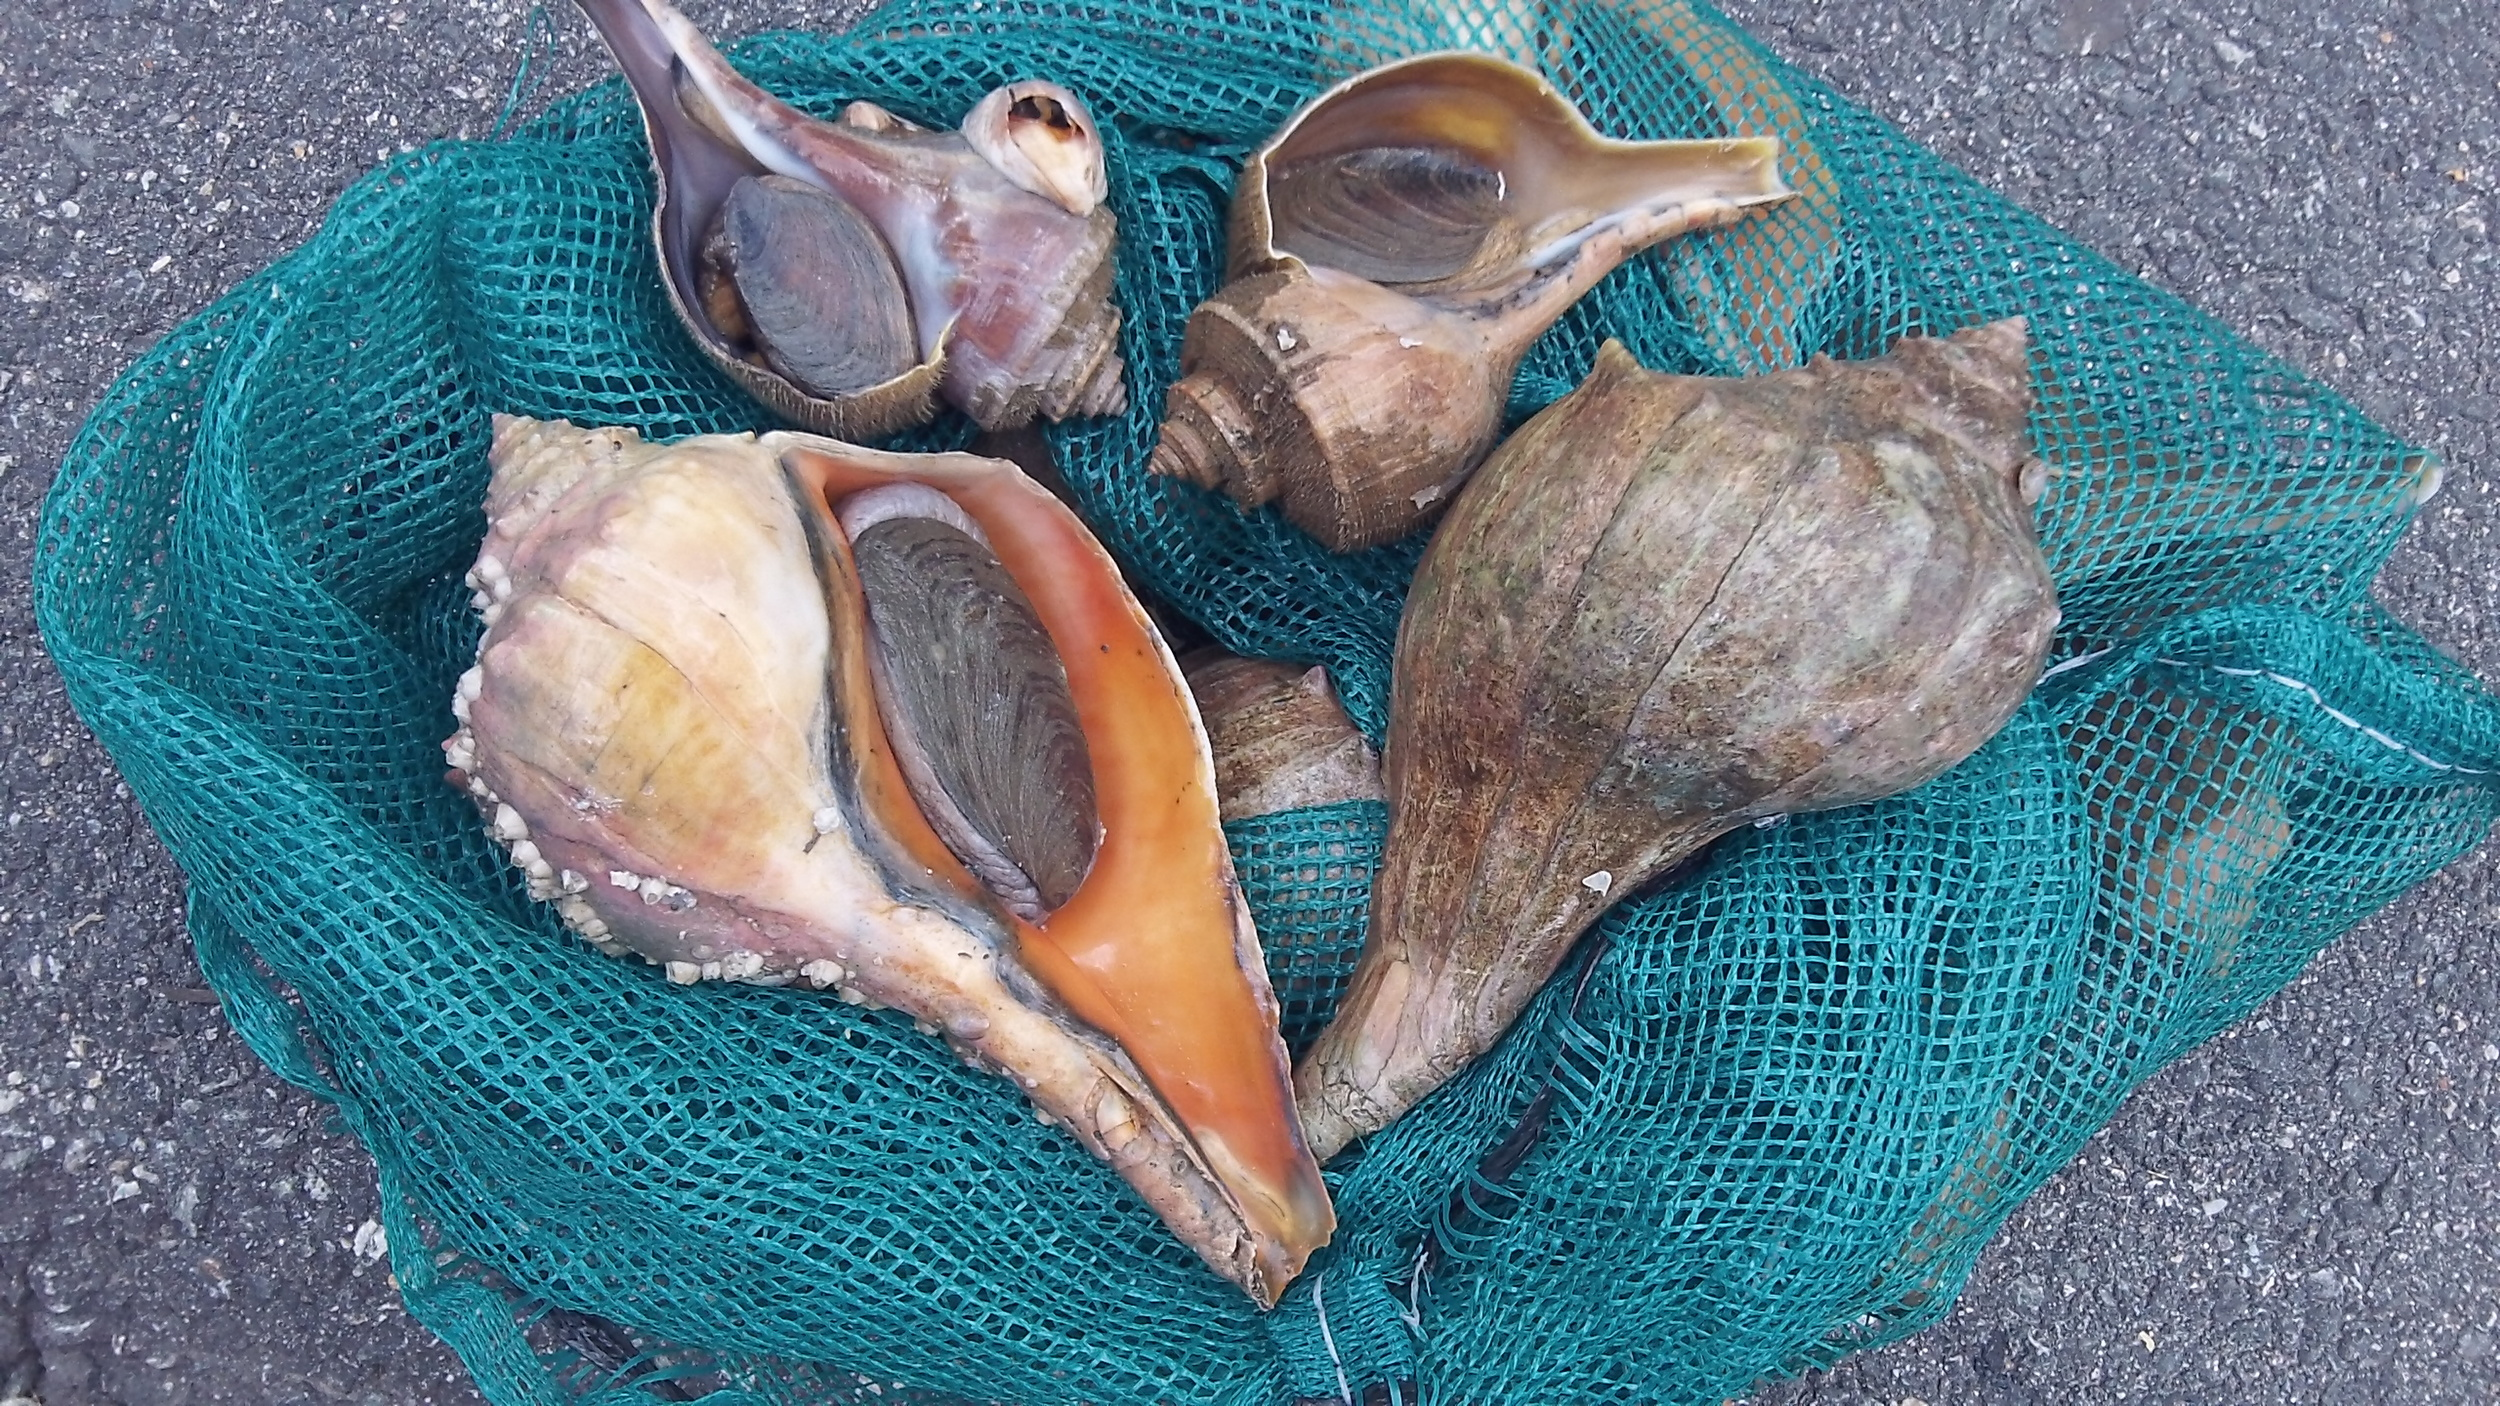 Conchs harvested by Dan and Katie Eagan of Bristol